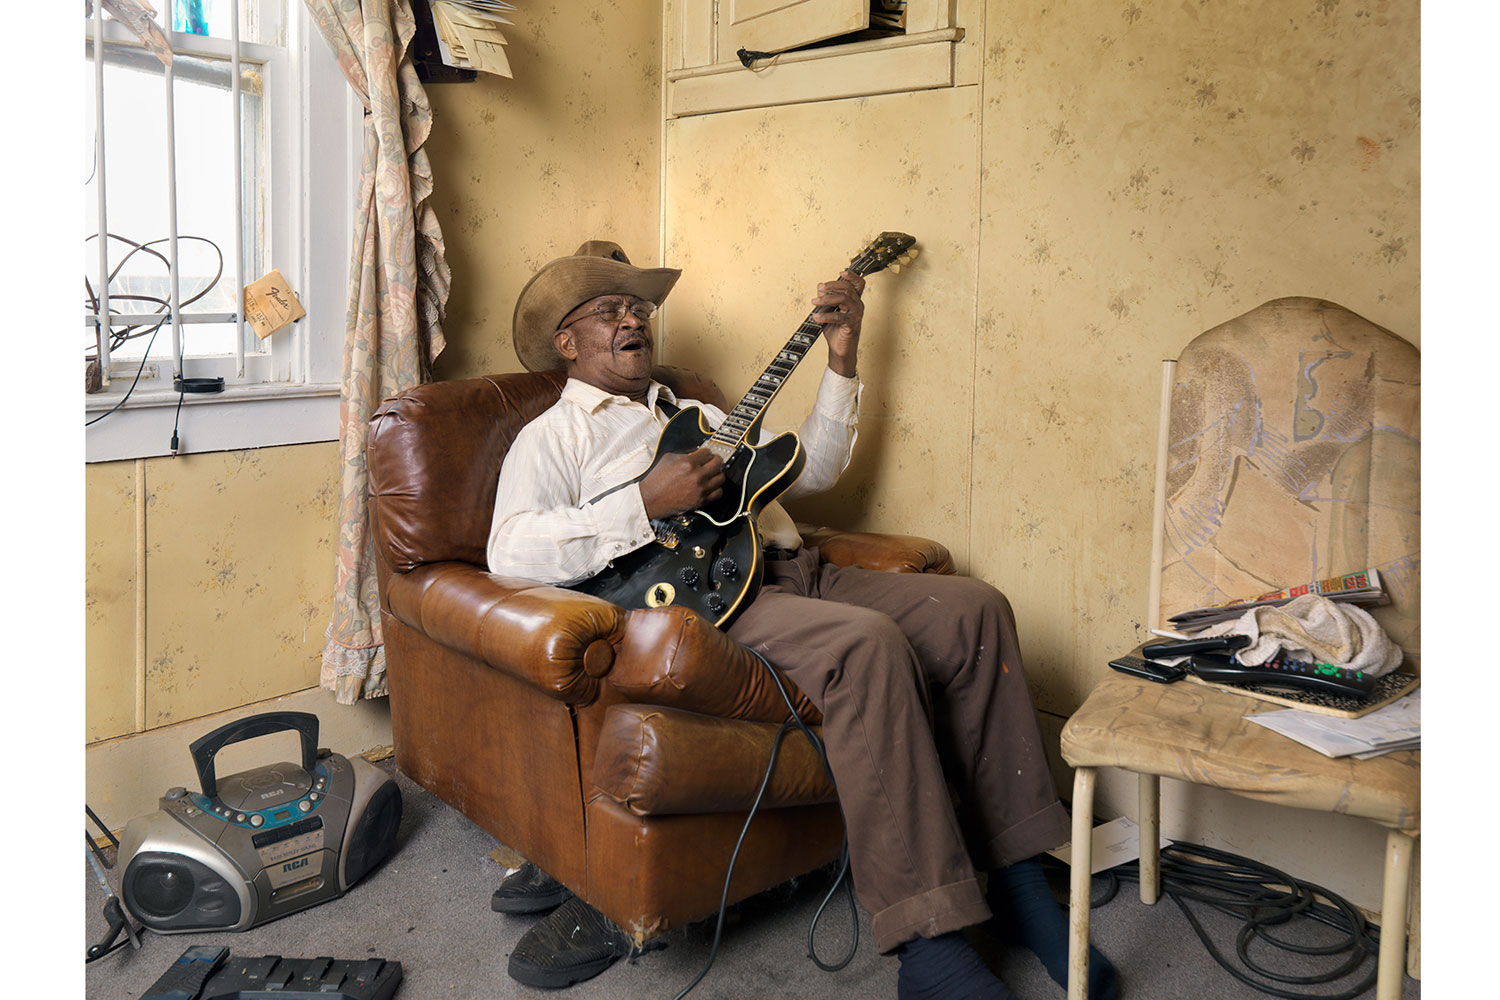 Glemie Playing the Blues, Westside, Detroit, 2011                                                              Glemie, a retired truck driver and fifty-year resident of Detroit, is an accomplished blues singer, but he's also known for his small game hunting skills.  Every fall he hunts an average of 150 raccoons, which he skins, dresses, and sells as food to clients.  This extra income supplements his meager retirement benefits.